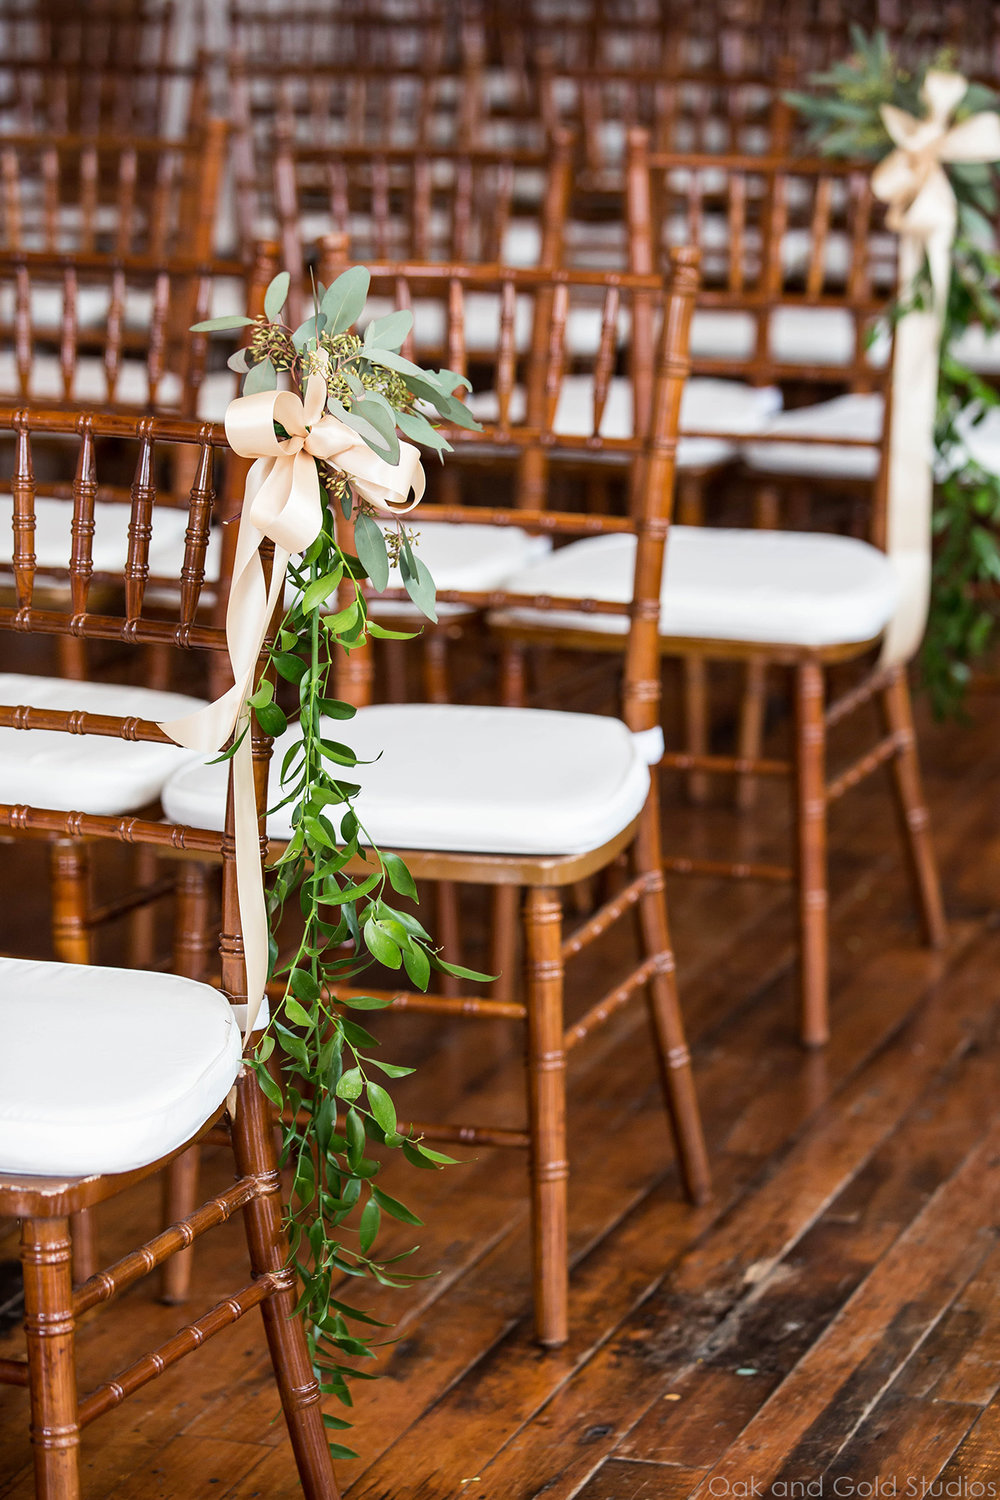 chair decor for wedding.jpg